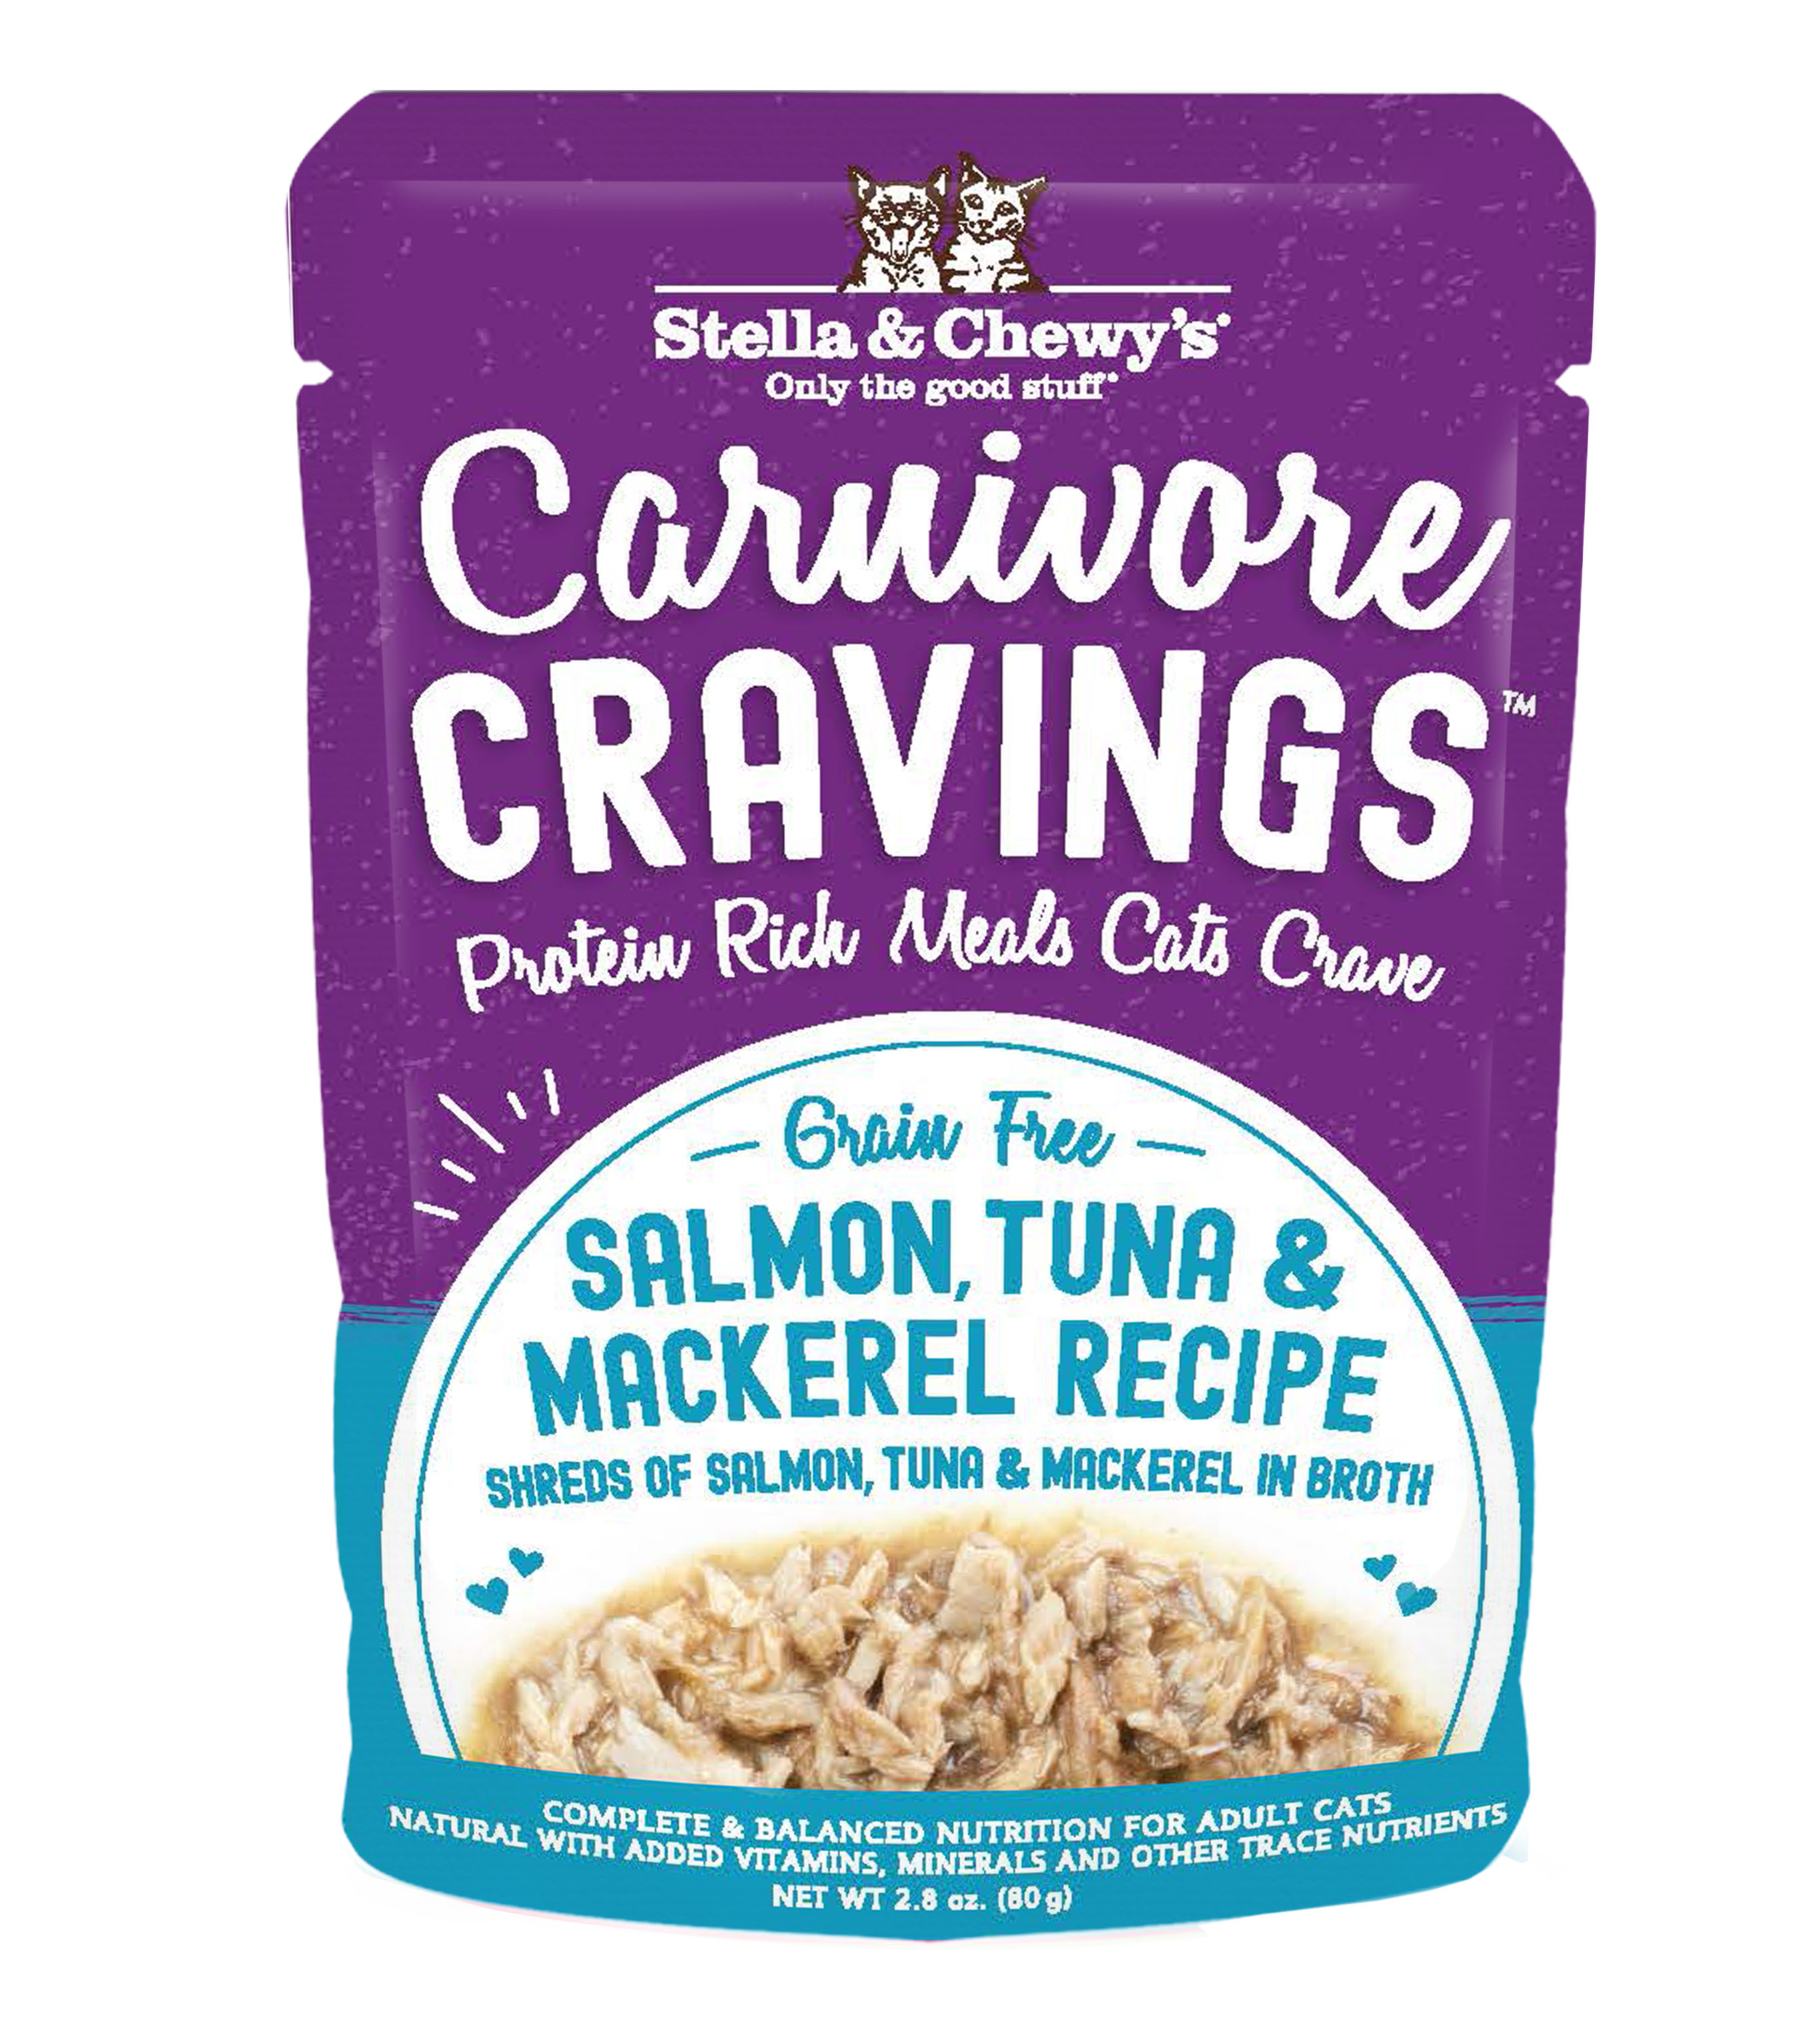 Stella & Chewy's Carnivore Cravings Salmon, Tuna & Mackerel Wet Cat Food, 2.8-oz pouch